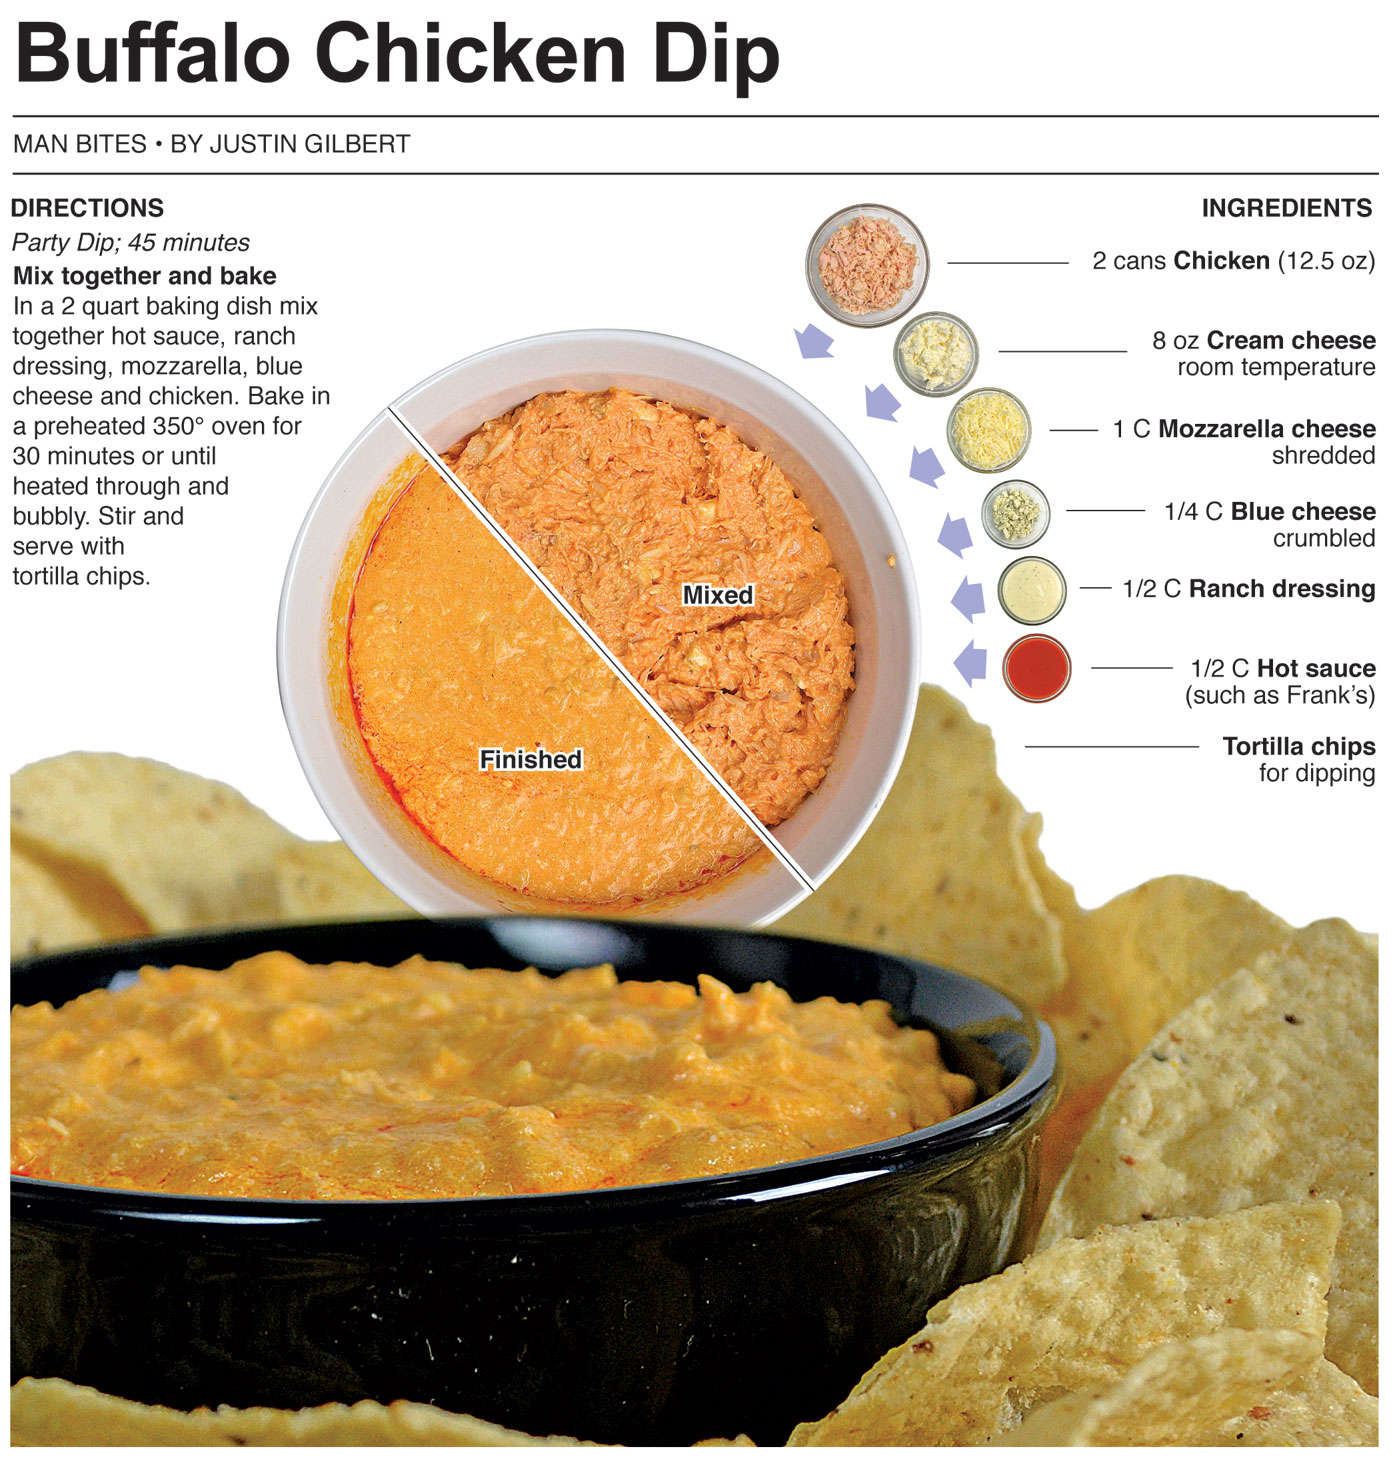 Behind the Bites: Buffalo Chicken Dip